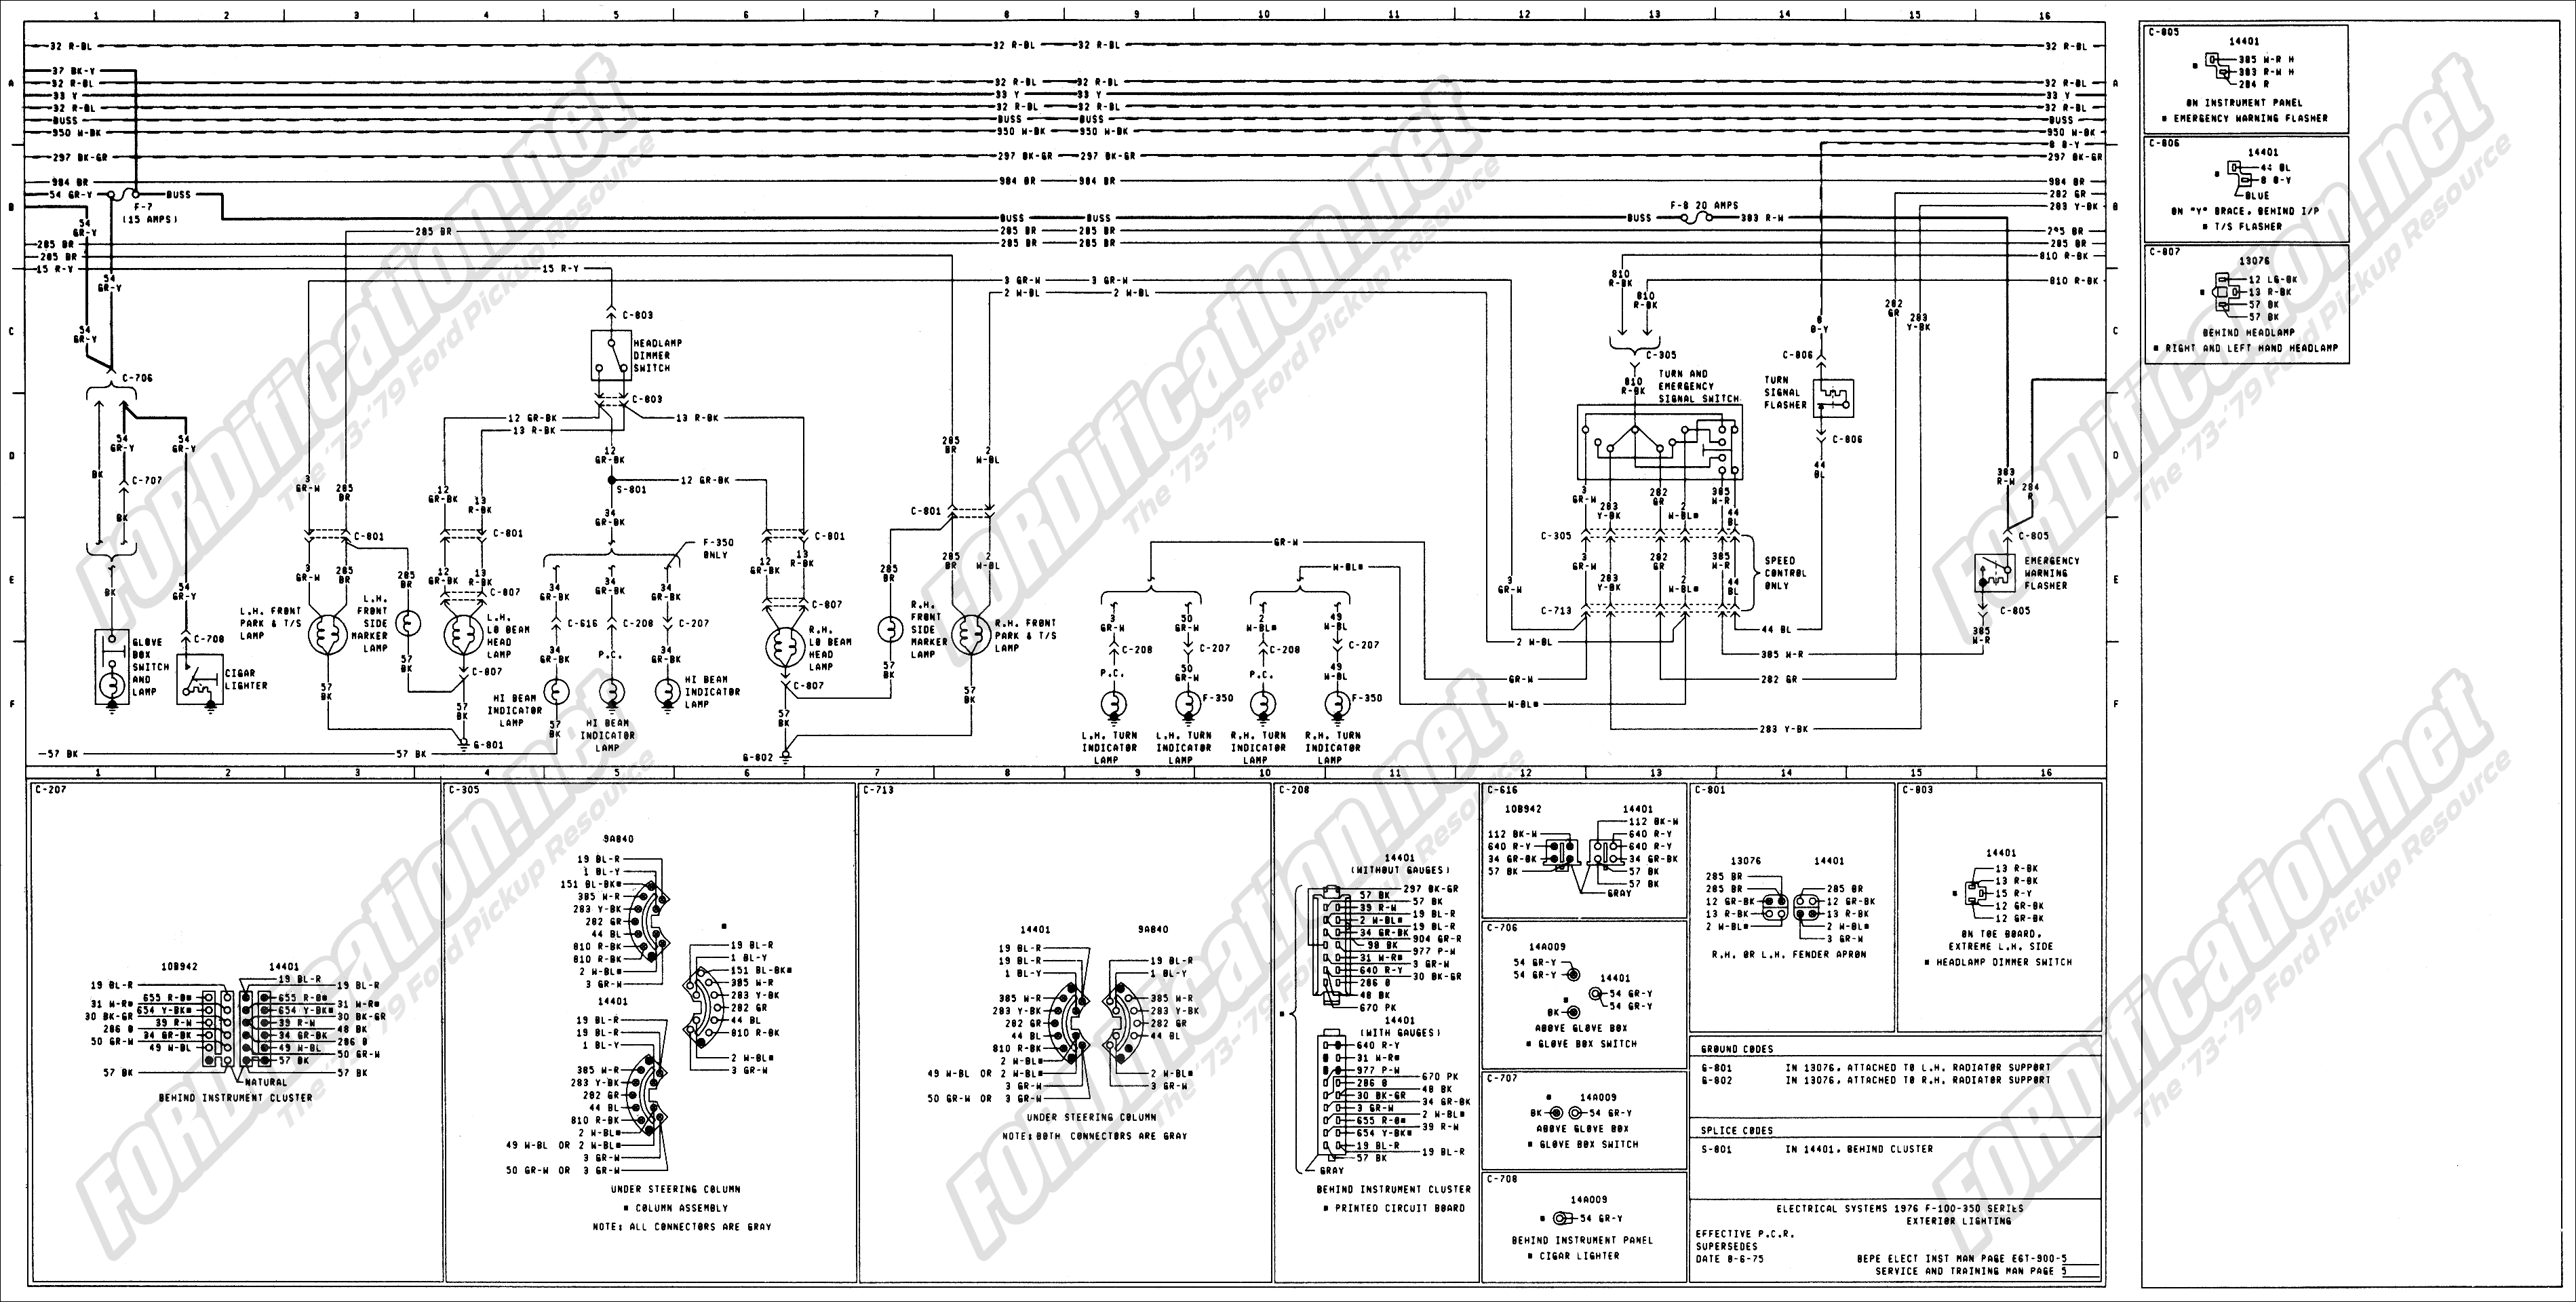 1966 F 100 Wiring Diagram Coil Texas Bragg Trailer Ford F100 Diagram1968 1968 Image Changed Column In